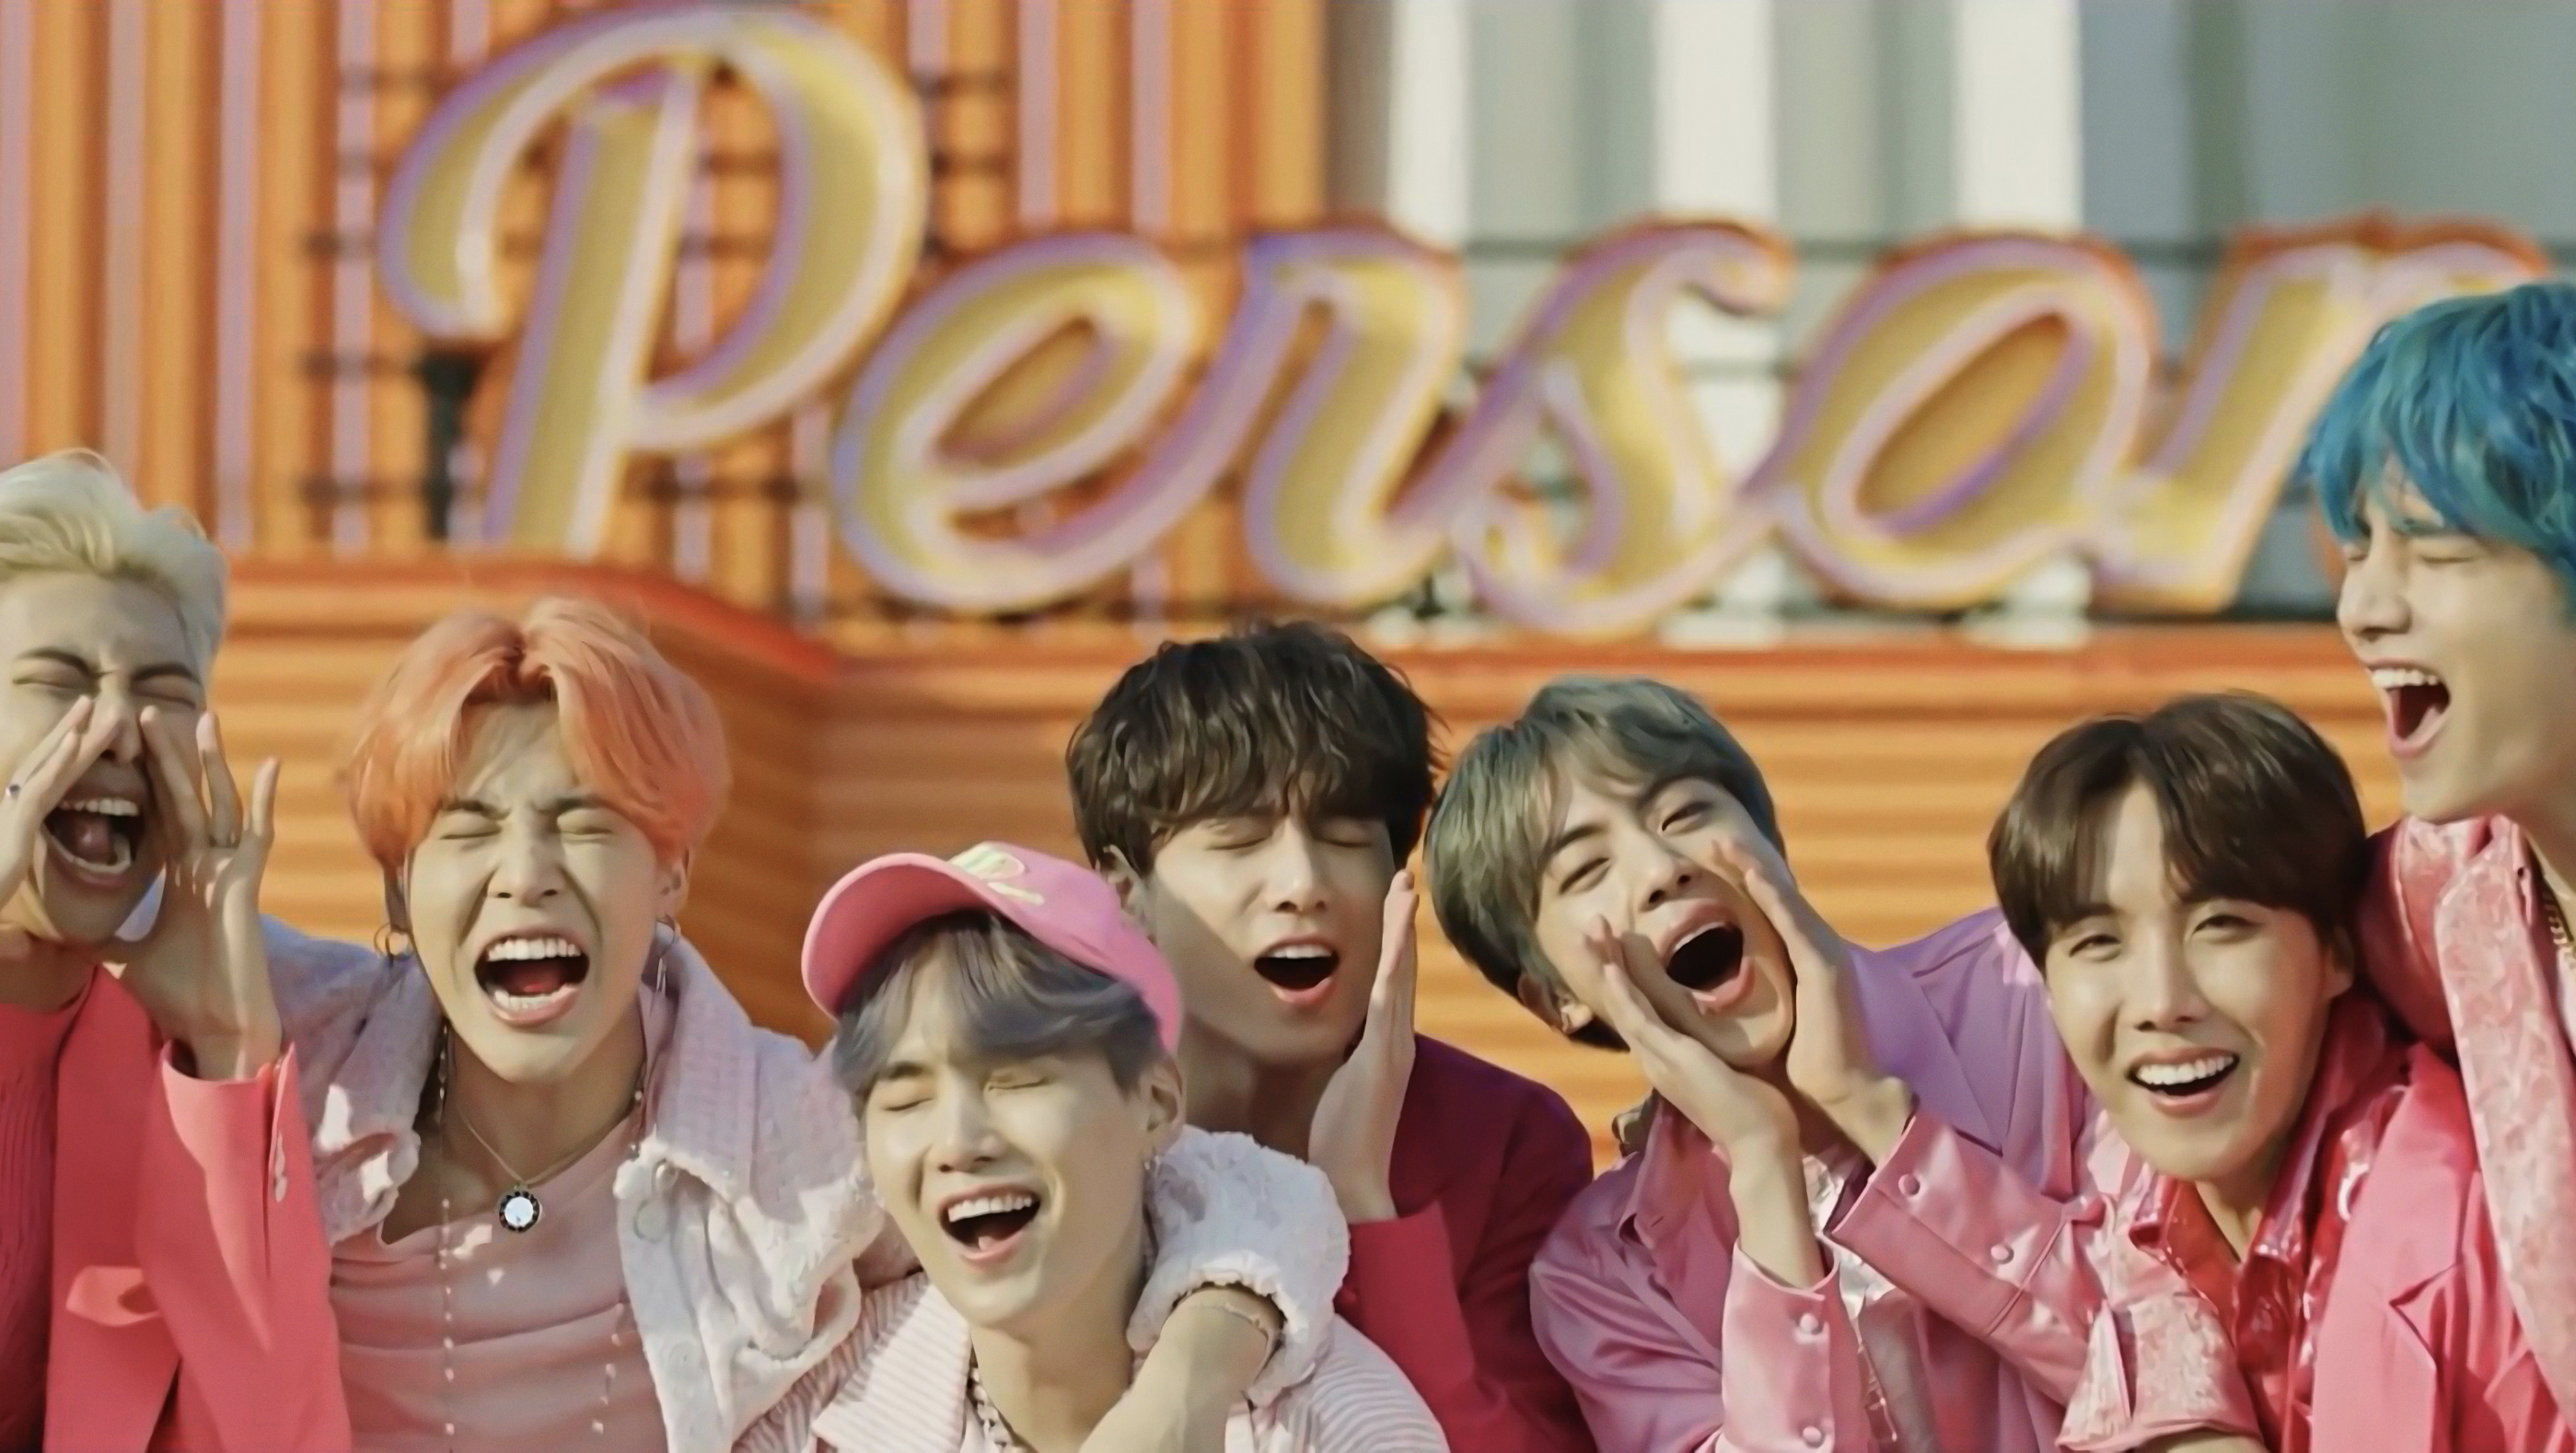 bts wallpapers 2020 for laptop